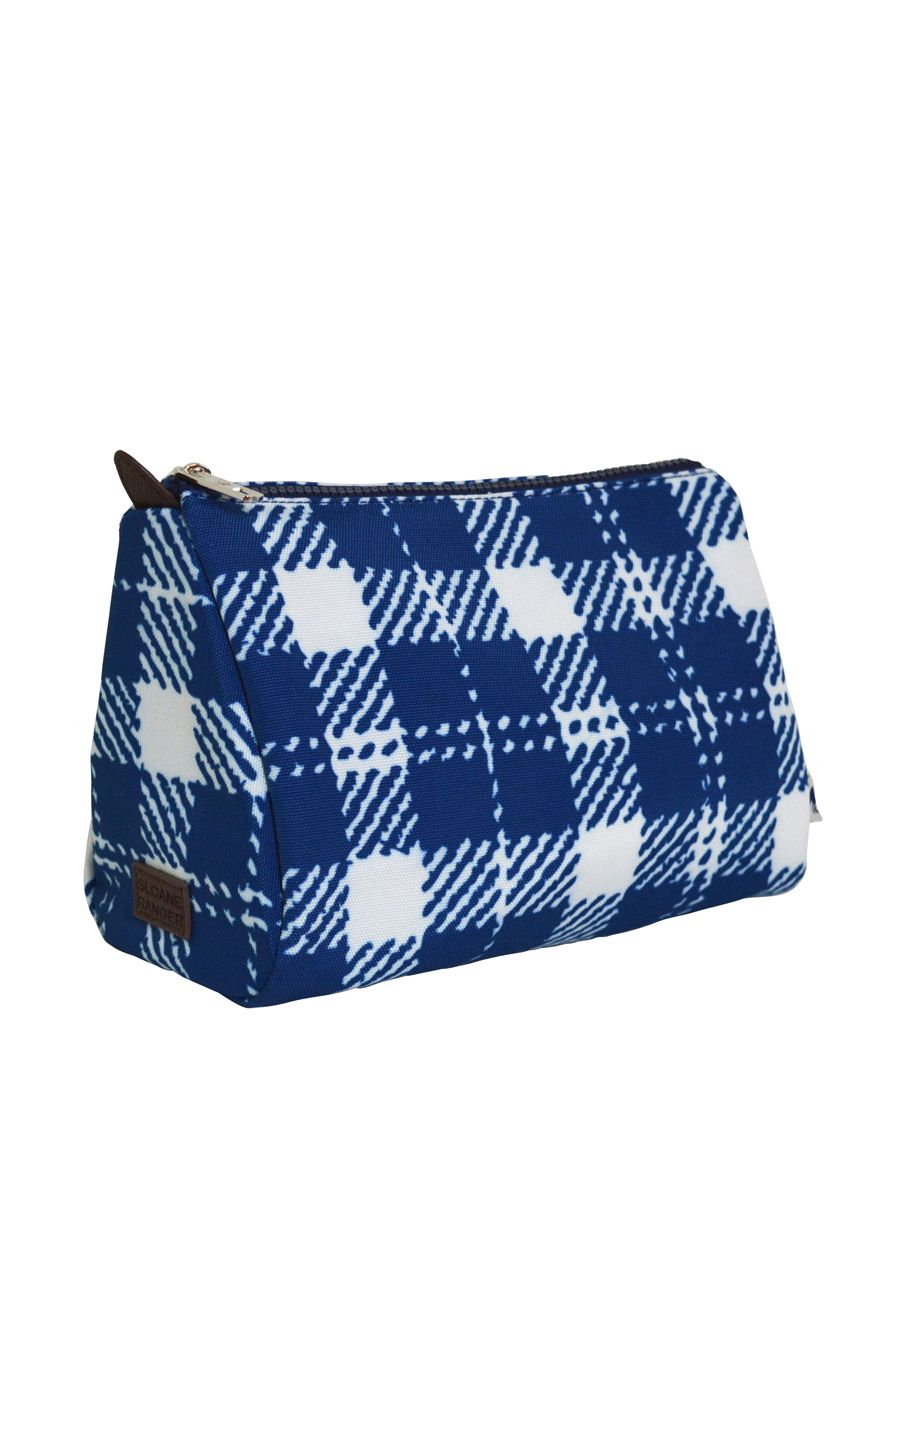 classic check cosmetic pouch. - FINAL SALE